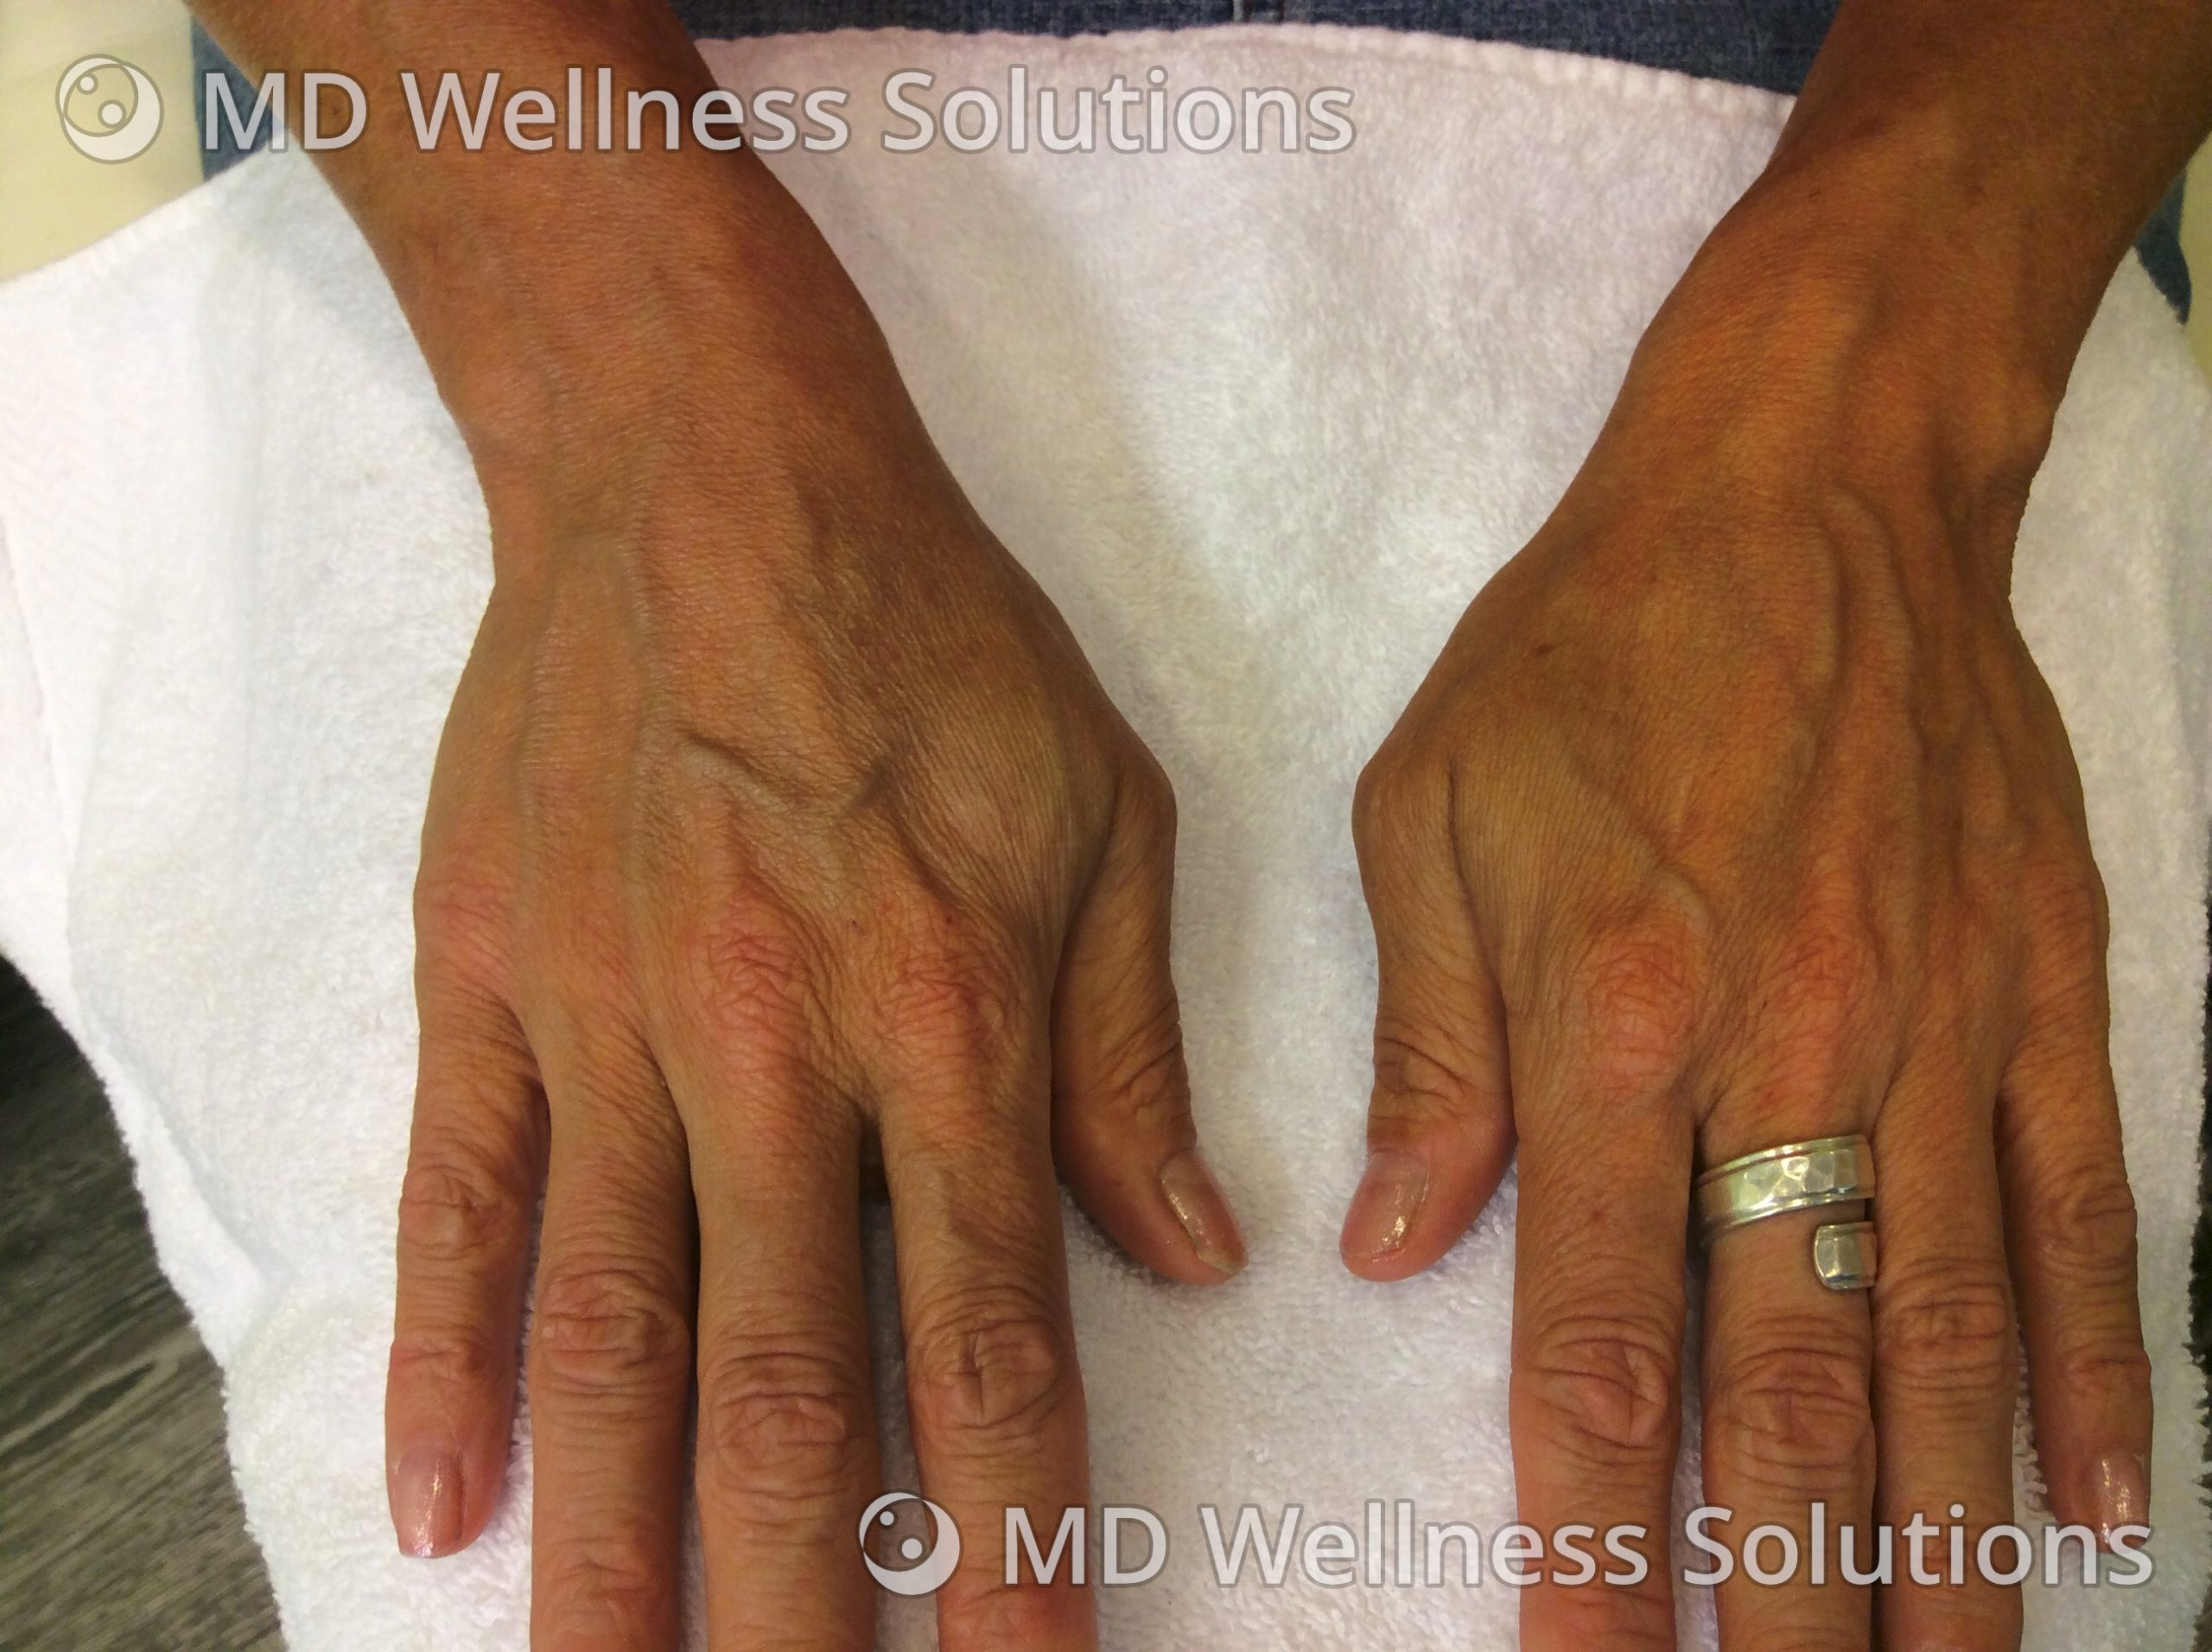 45-54 year old woman before hand filler treatment